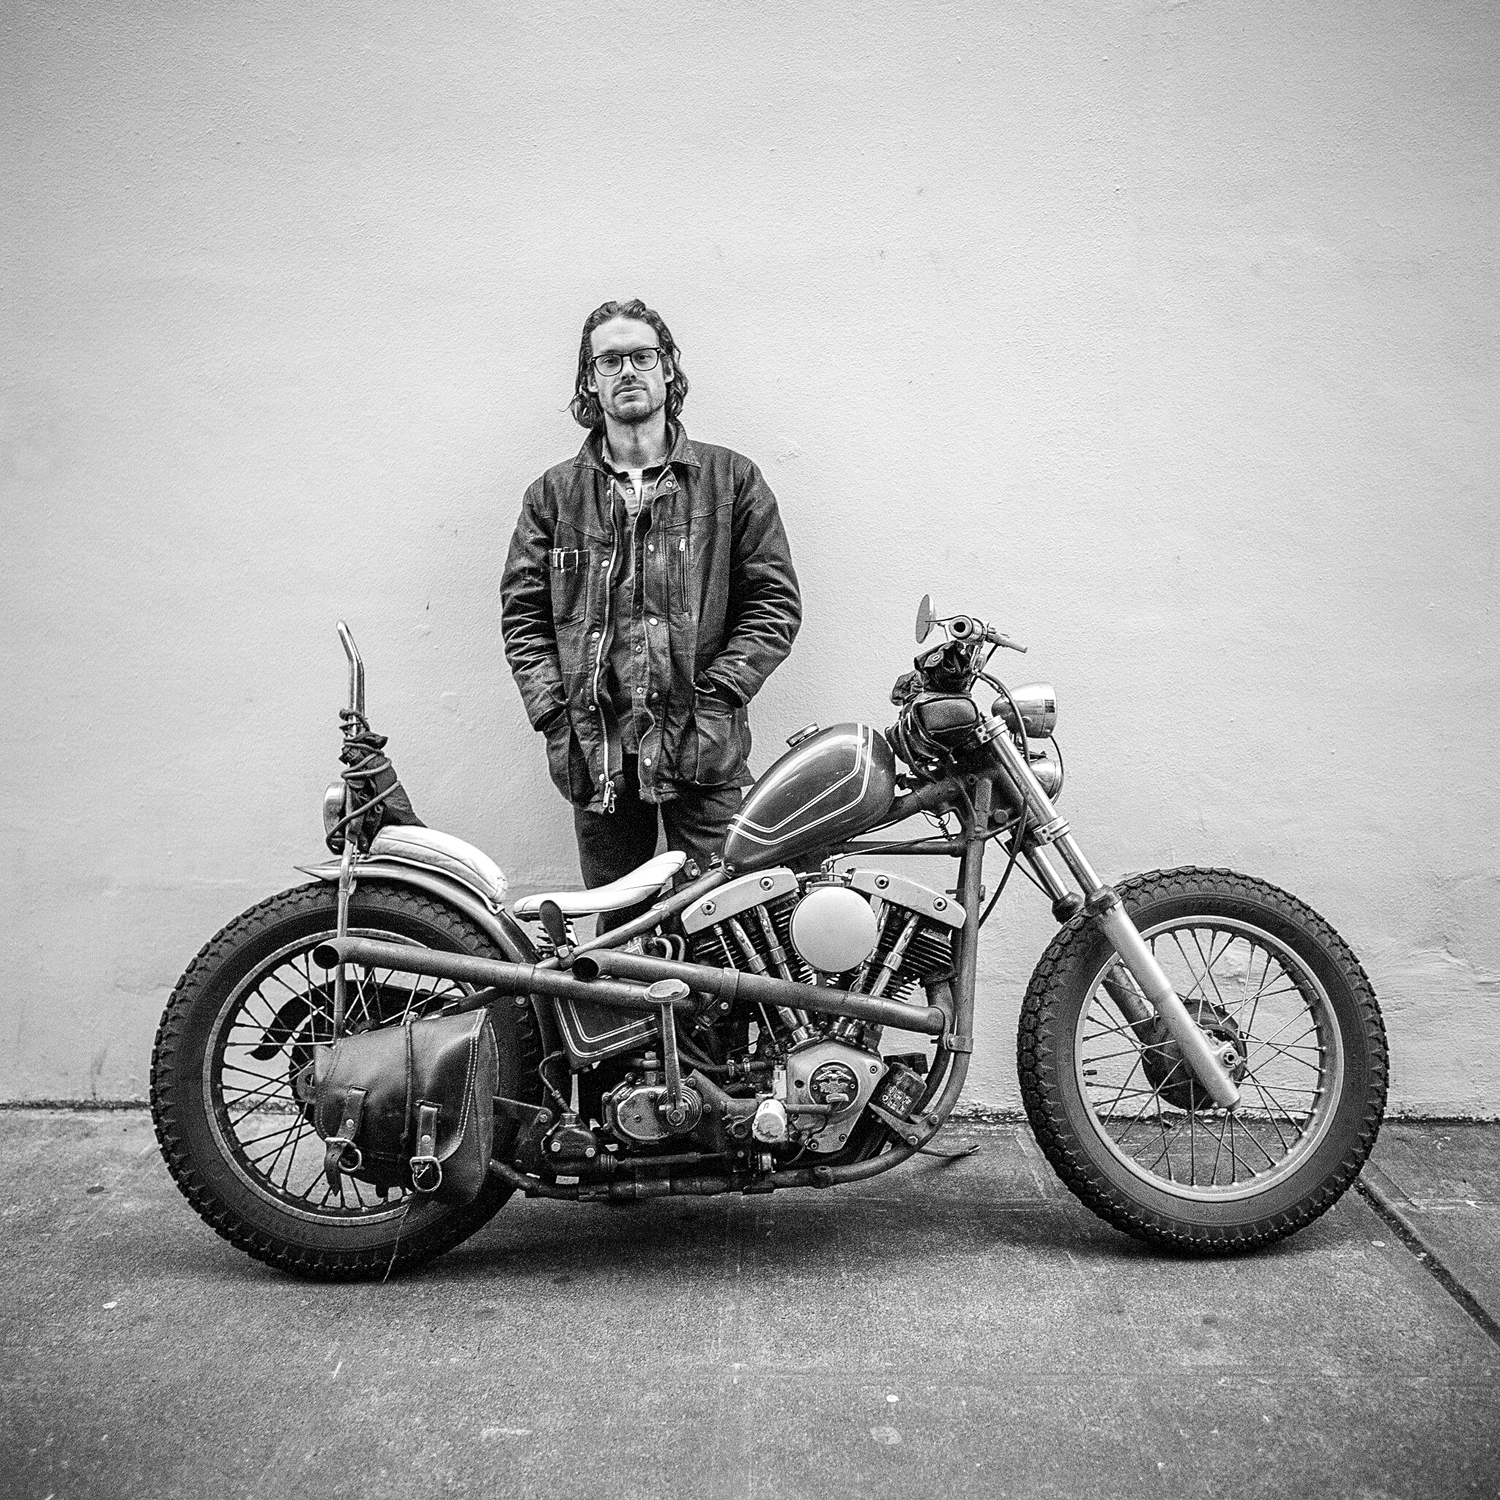 Rob_Williamson_robistall_motorcycles_03.jpg